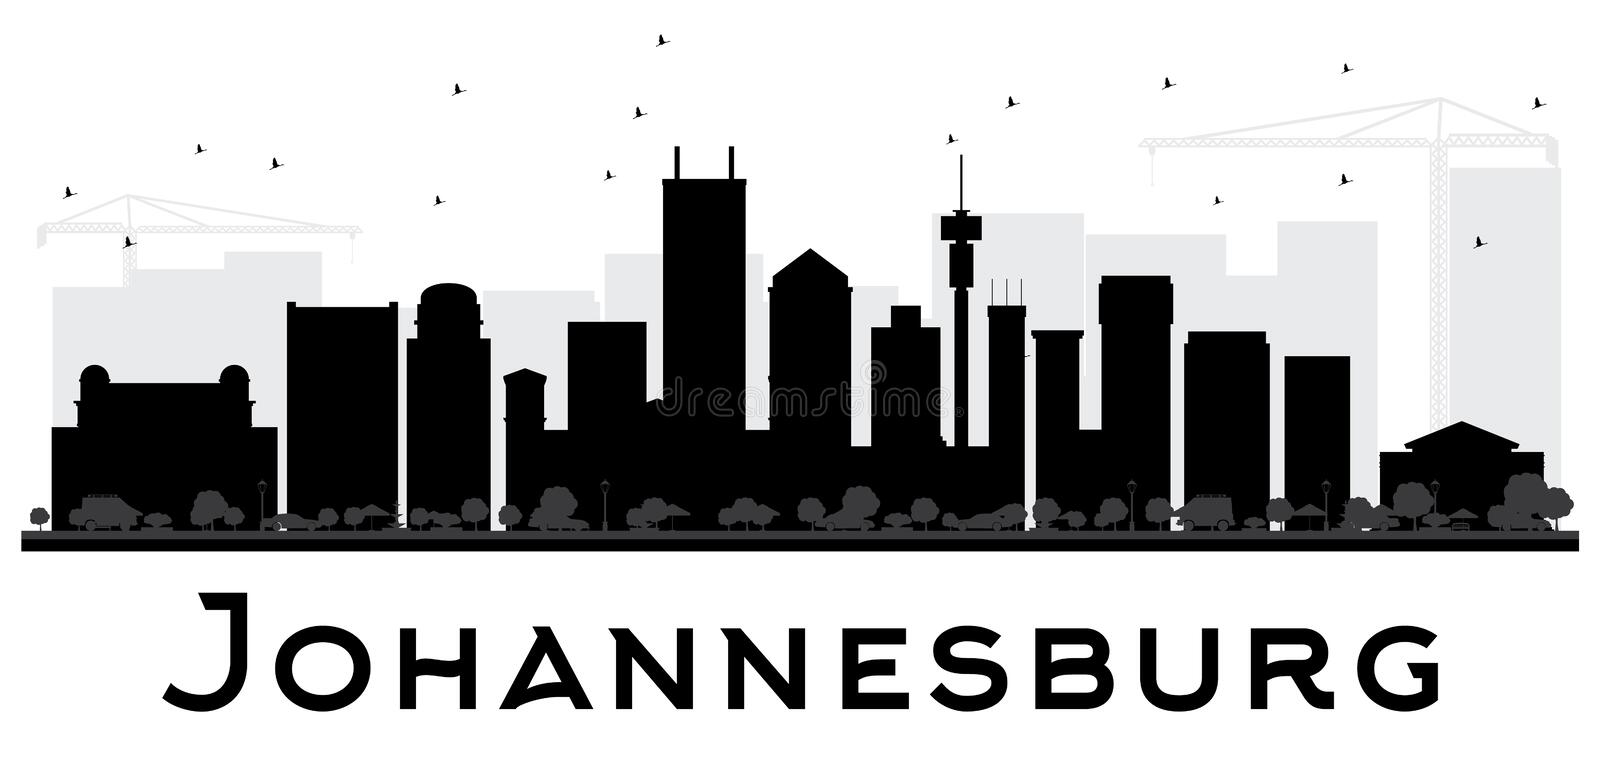 Johannesburg City skyline black and white silhouette. royalty free illustration